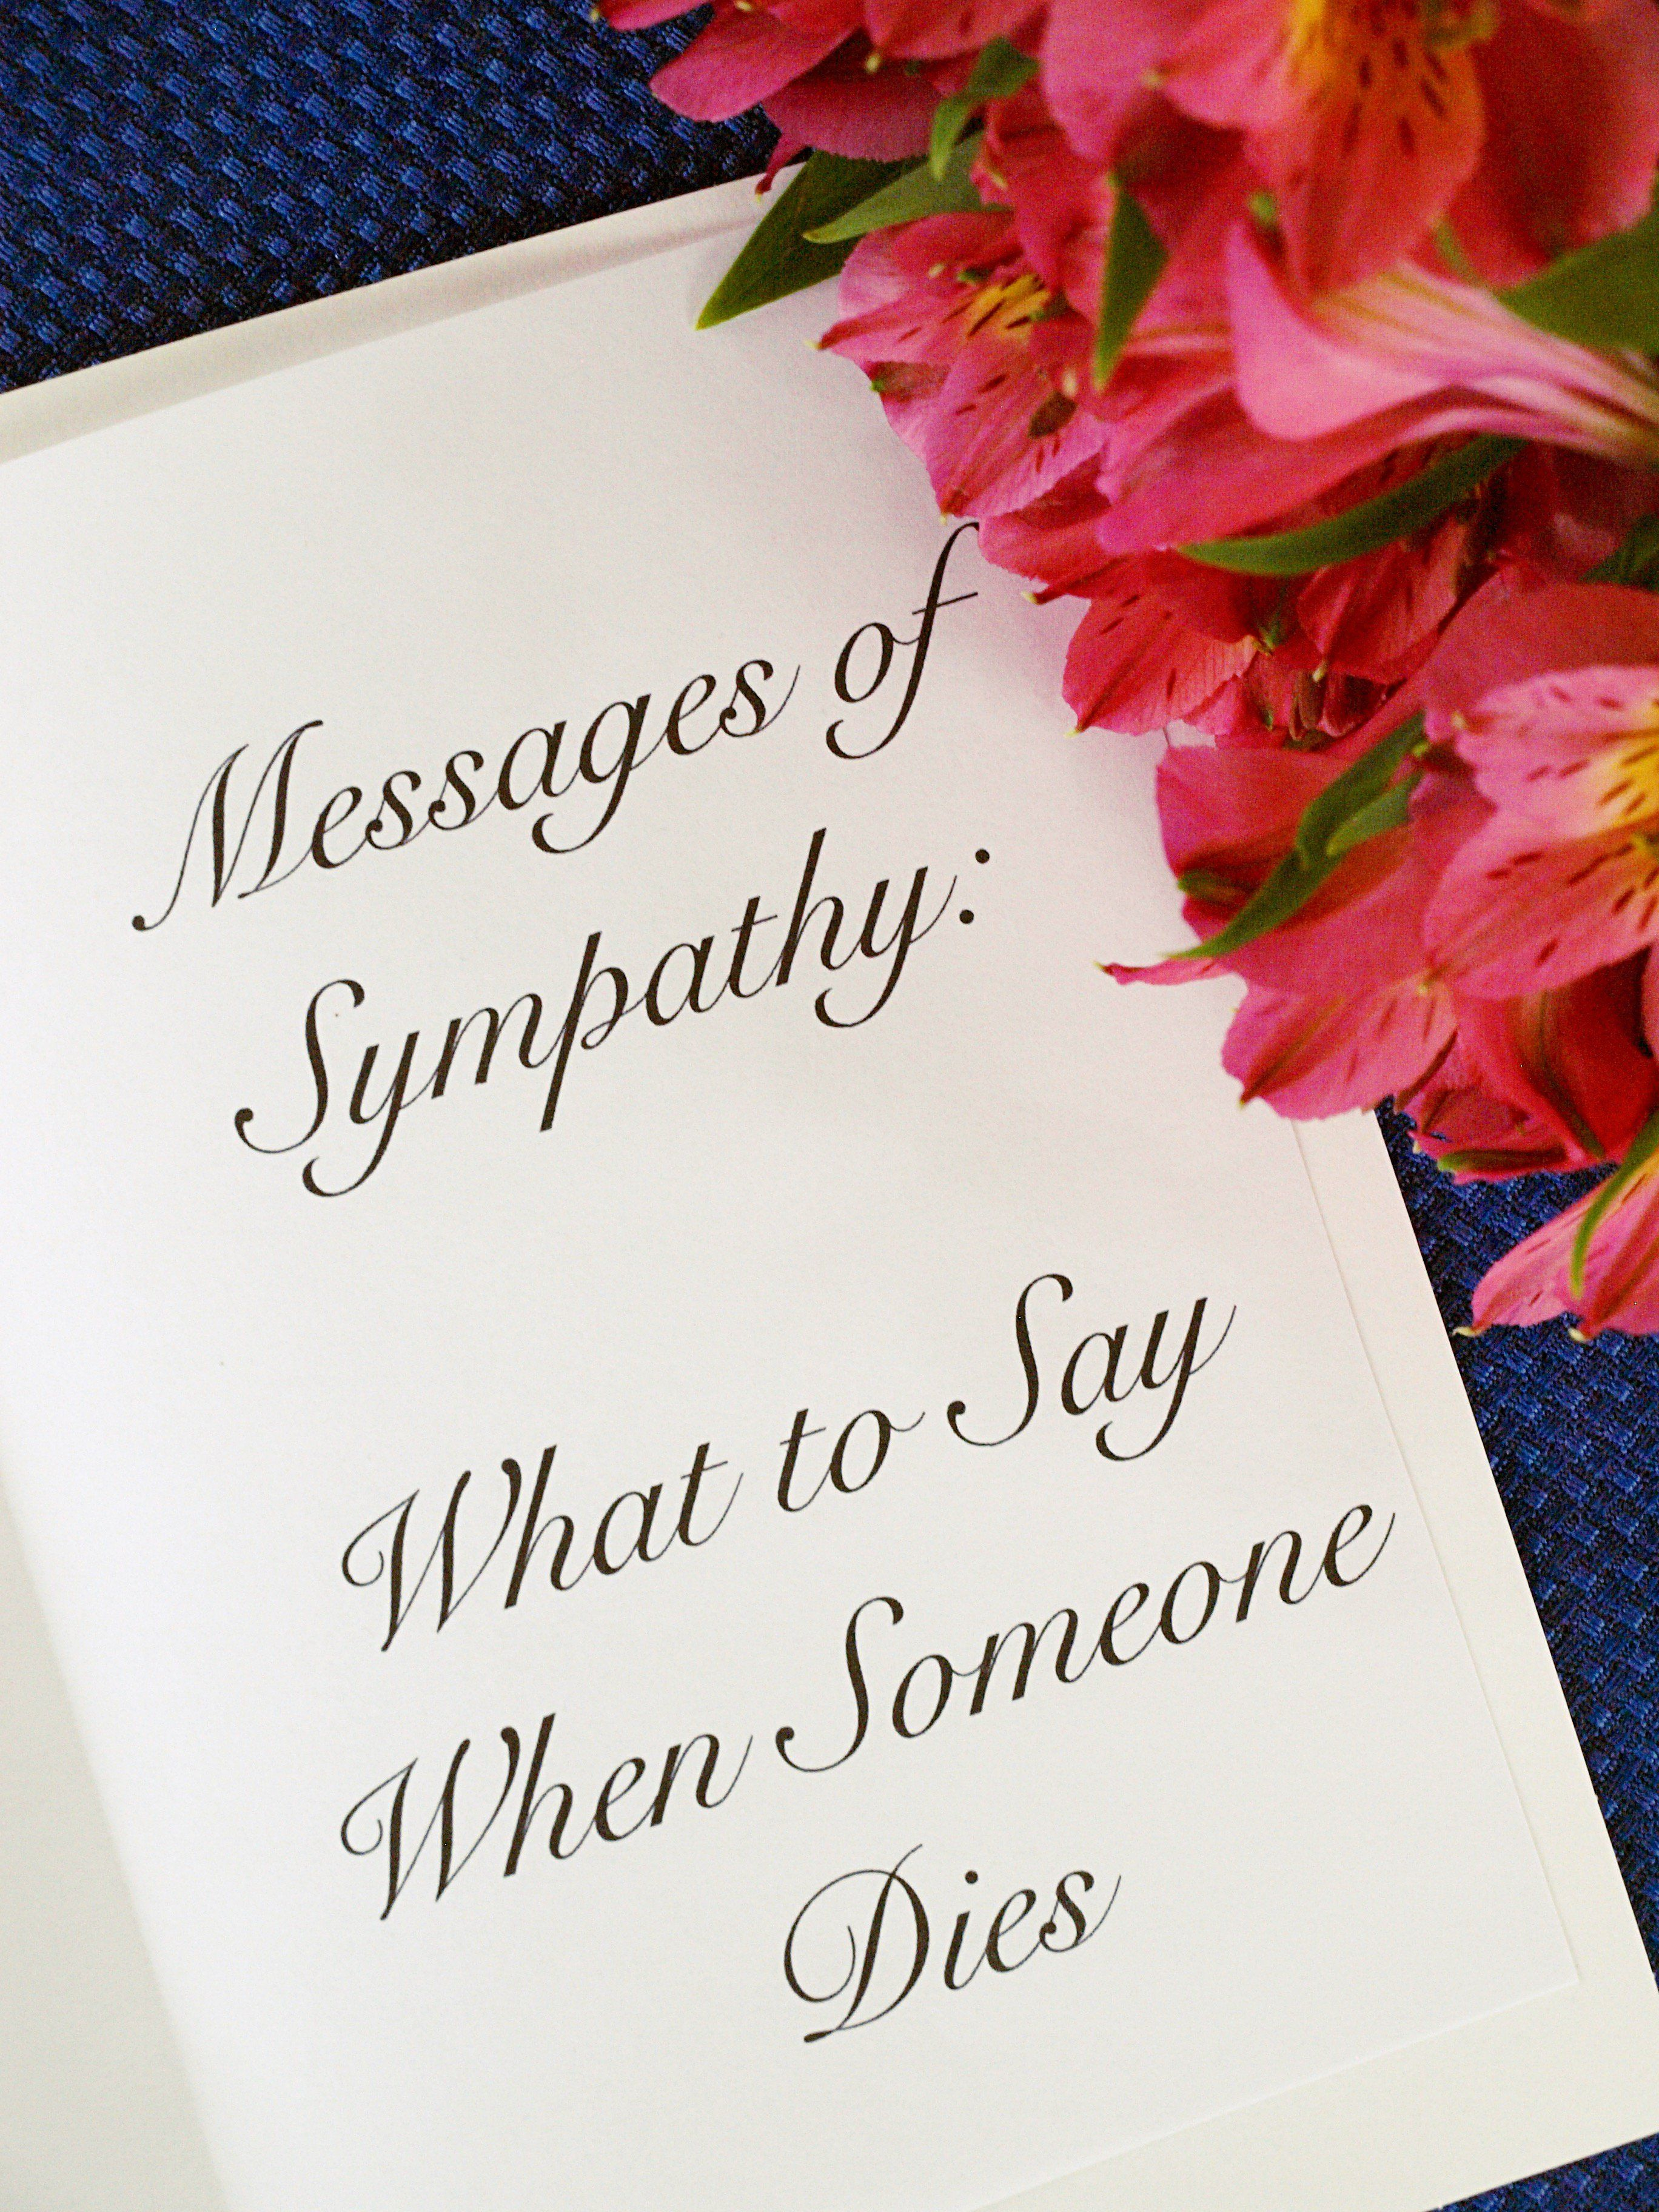 Messages of sympathy what to say when someone dies messages messages of sympathy what to say when someone dies ideal for card sentiments kristyandbryce Image collections